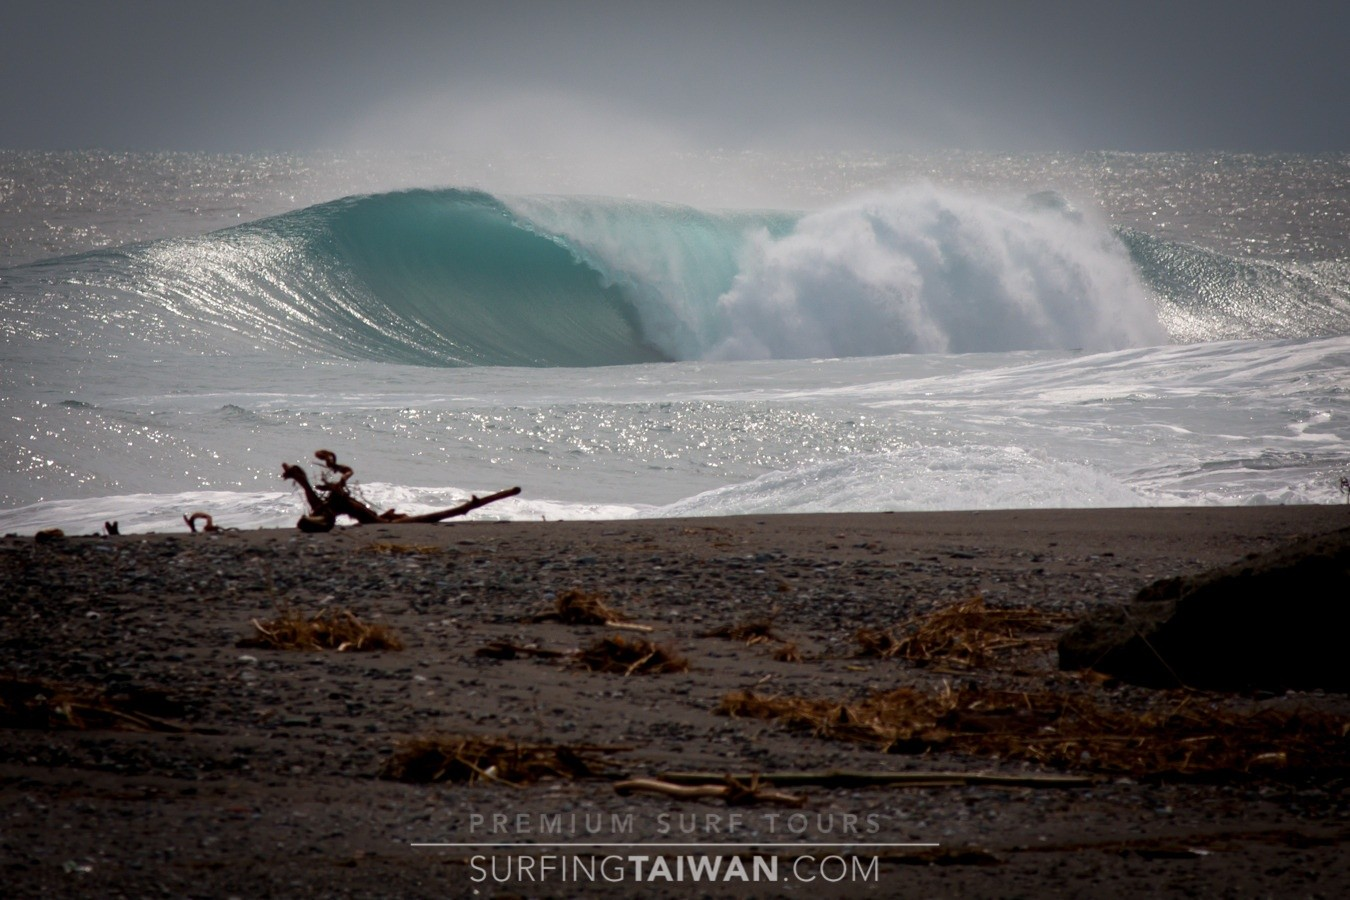 Surfing Taiwan's photo of Taitung